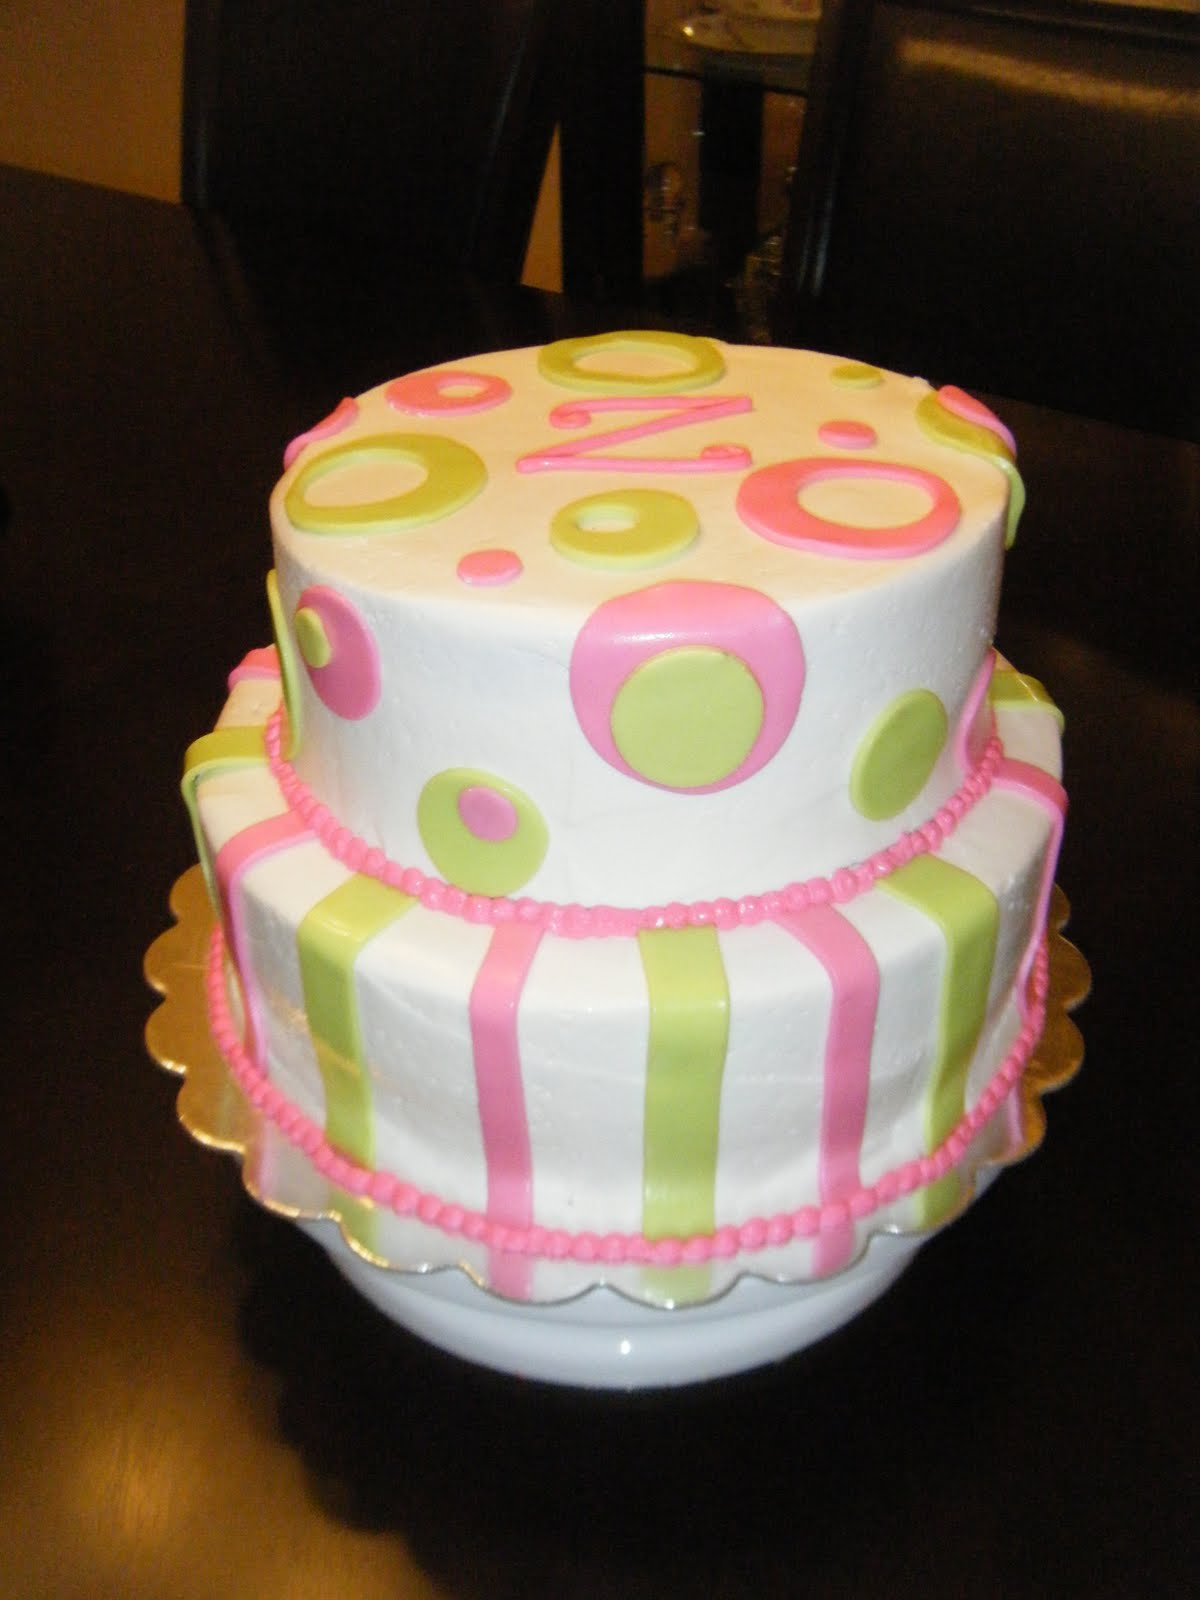 jessica 39 s cakealicious cakes pink and lime green baby shower cake